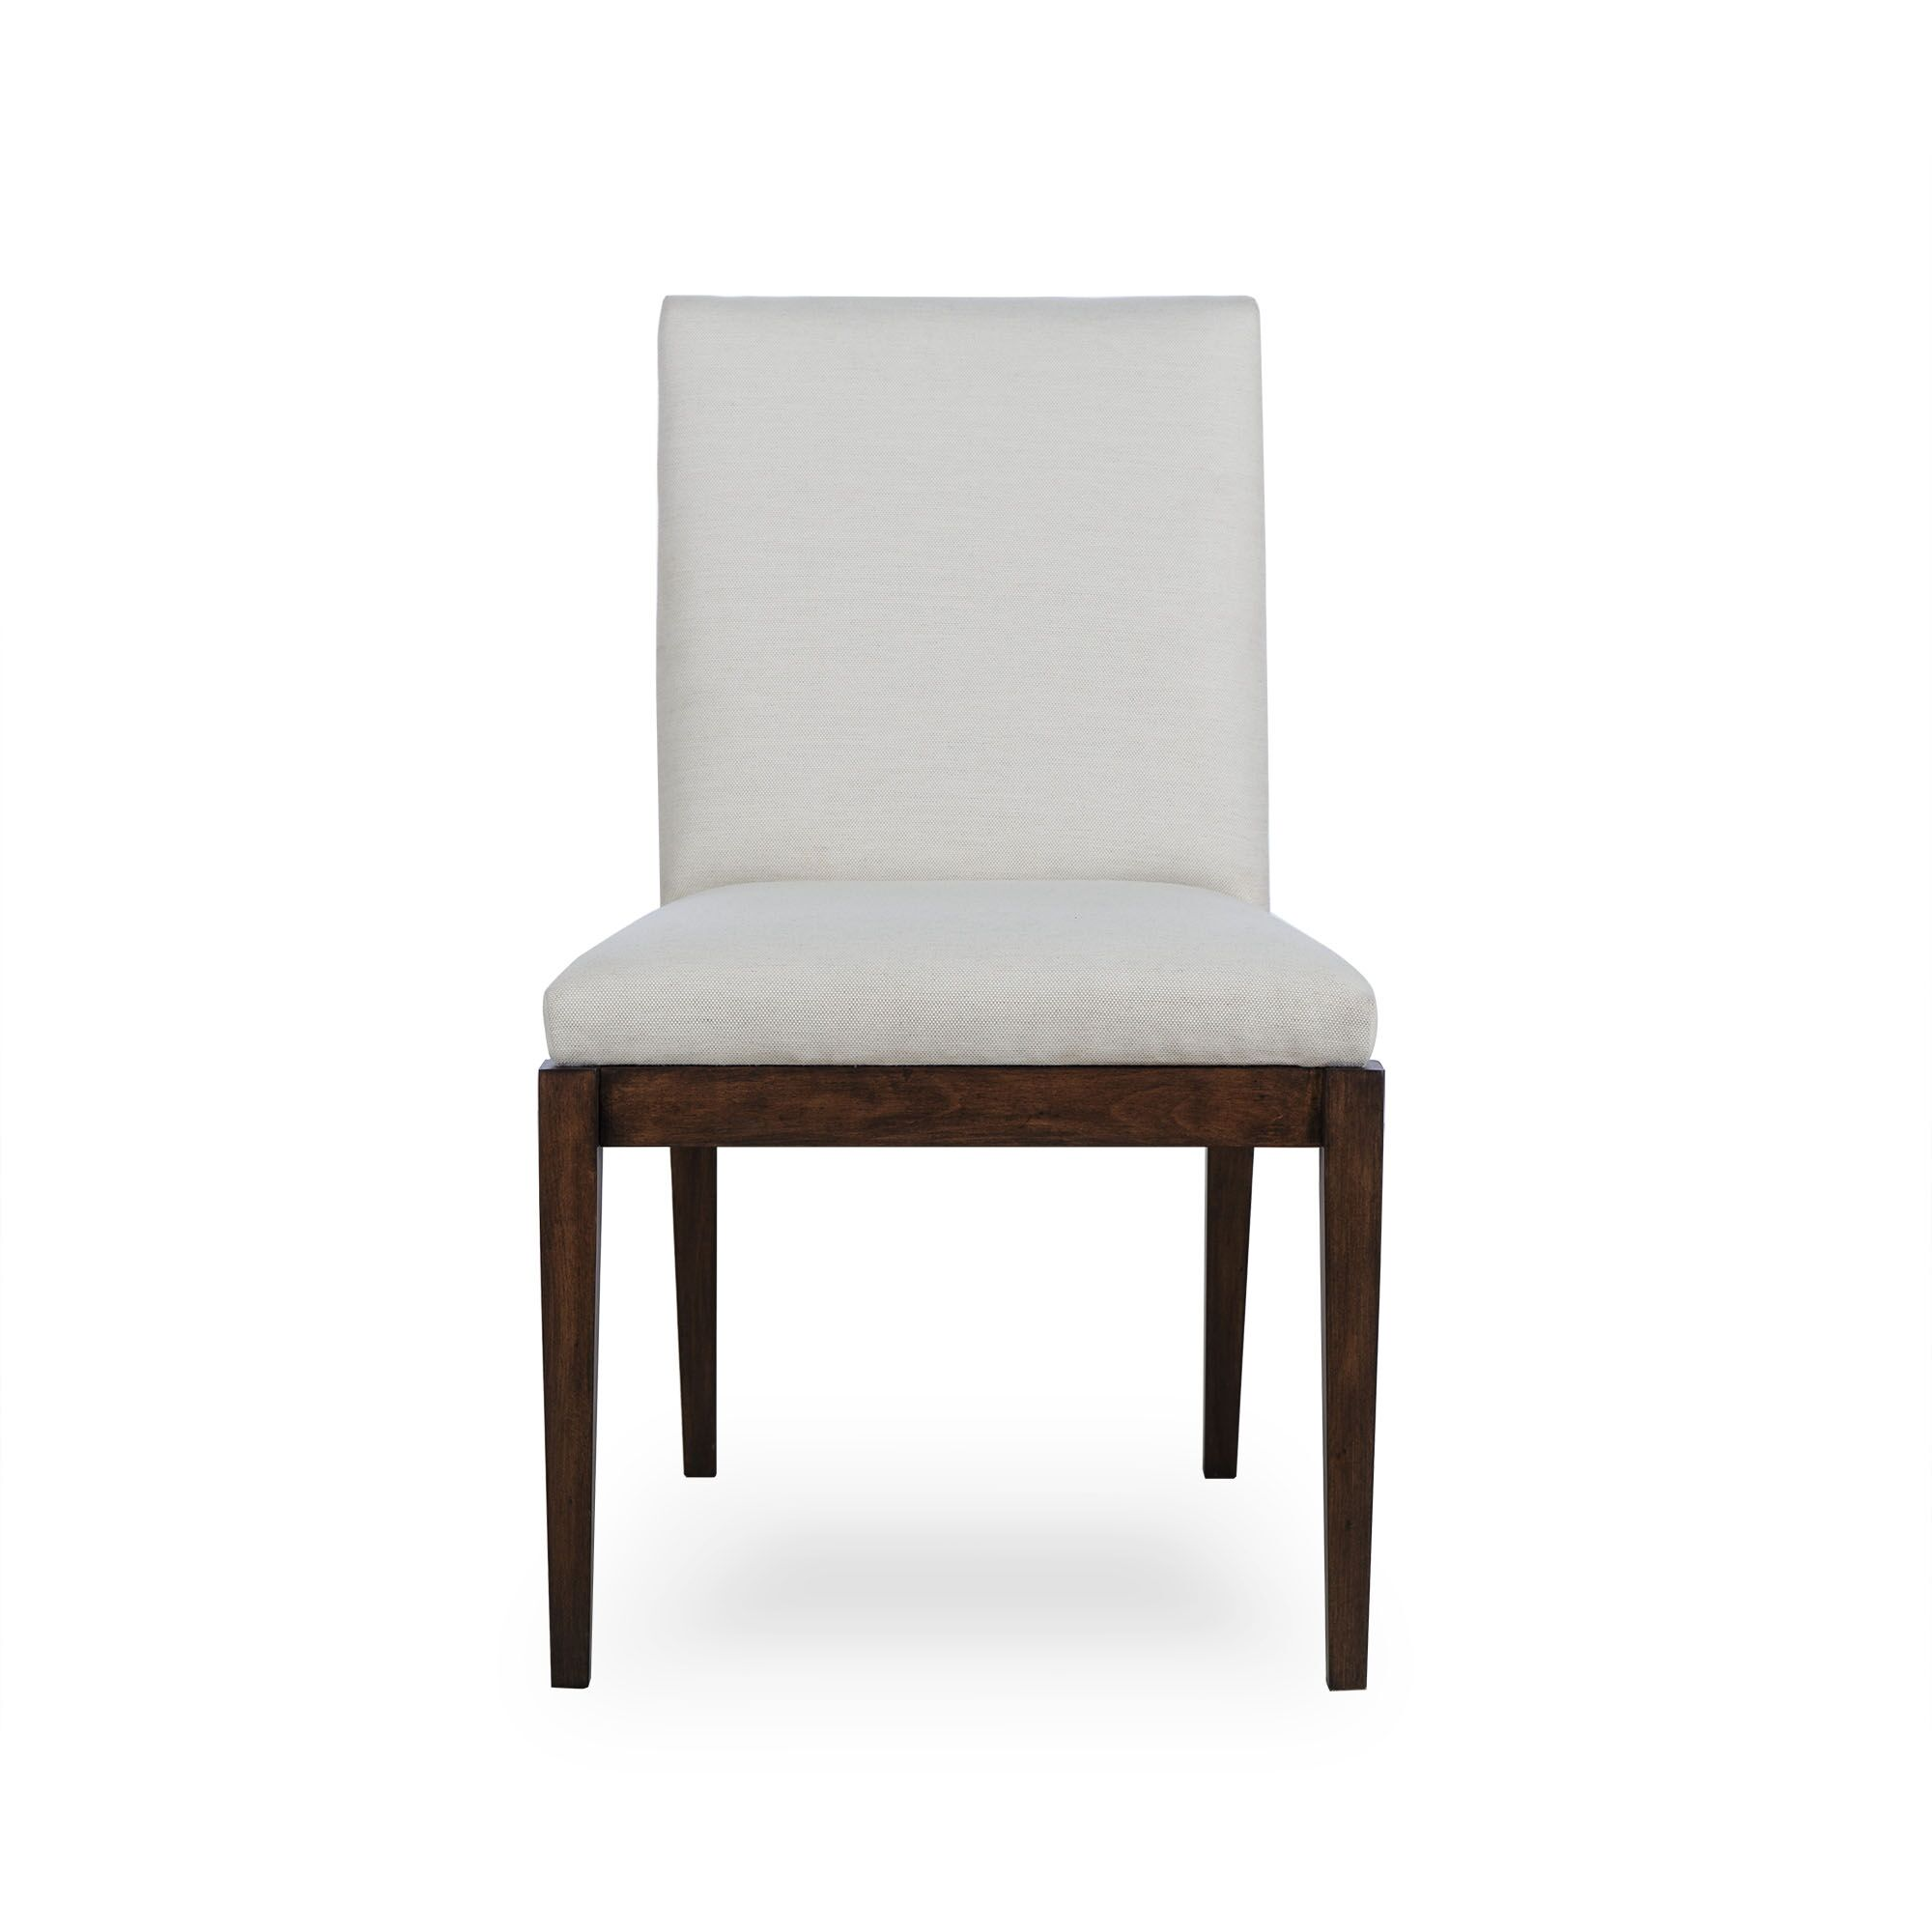 Maison 55 Upholstered Dining Chair Upholstery Color: Fabric Marley Flax